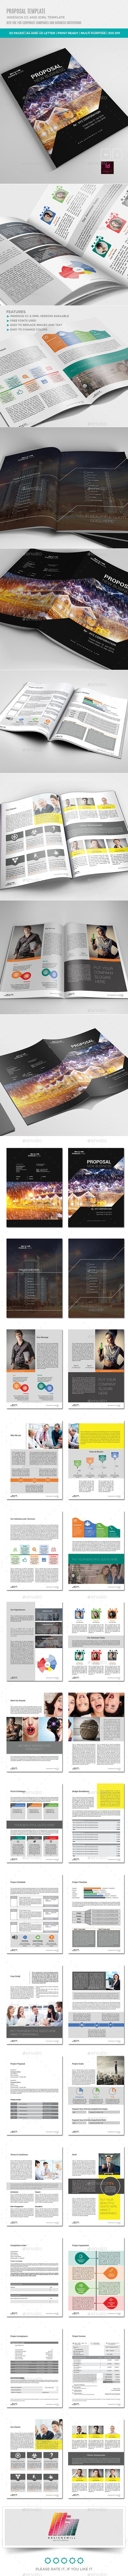 GraphicRiver Power House Proposal Template 10944642